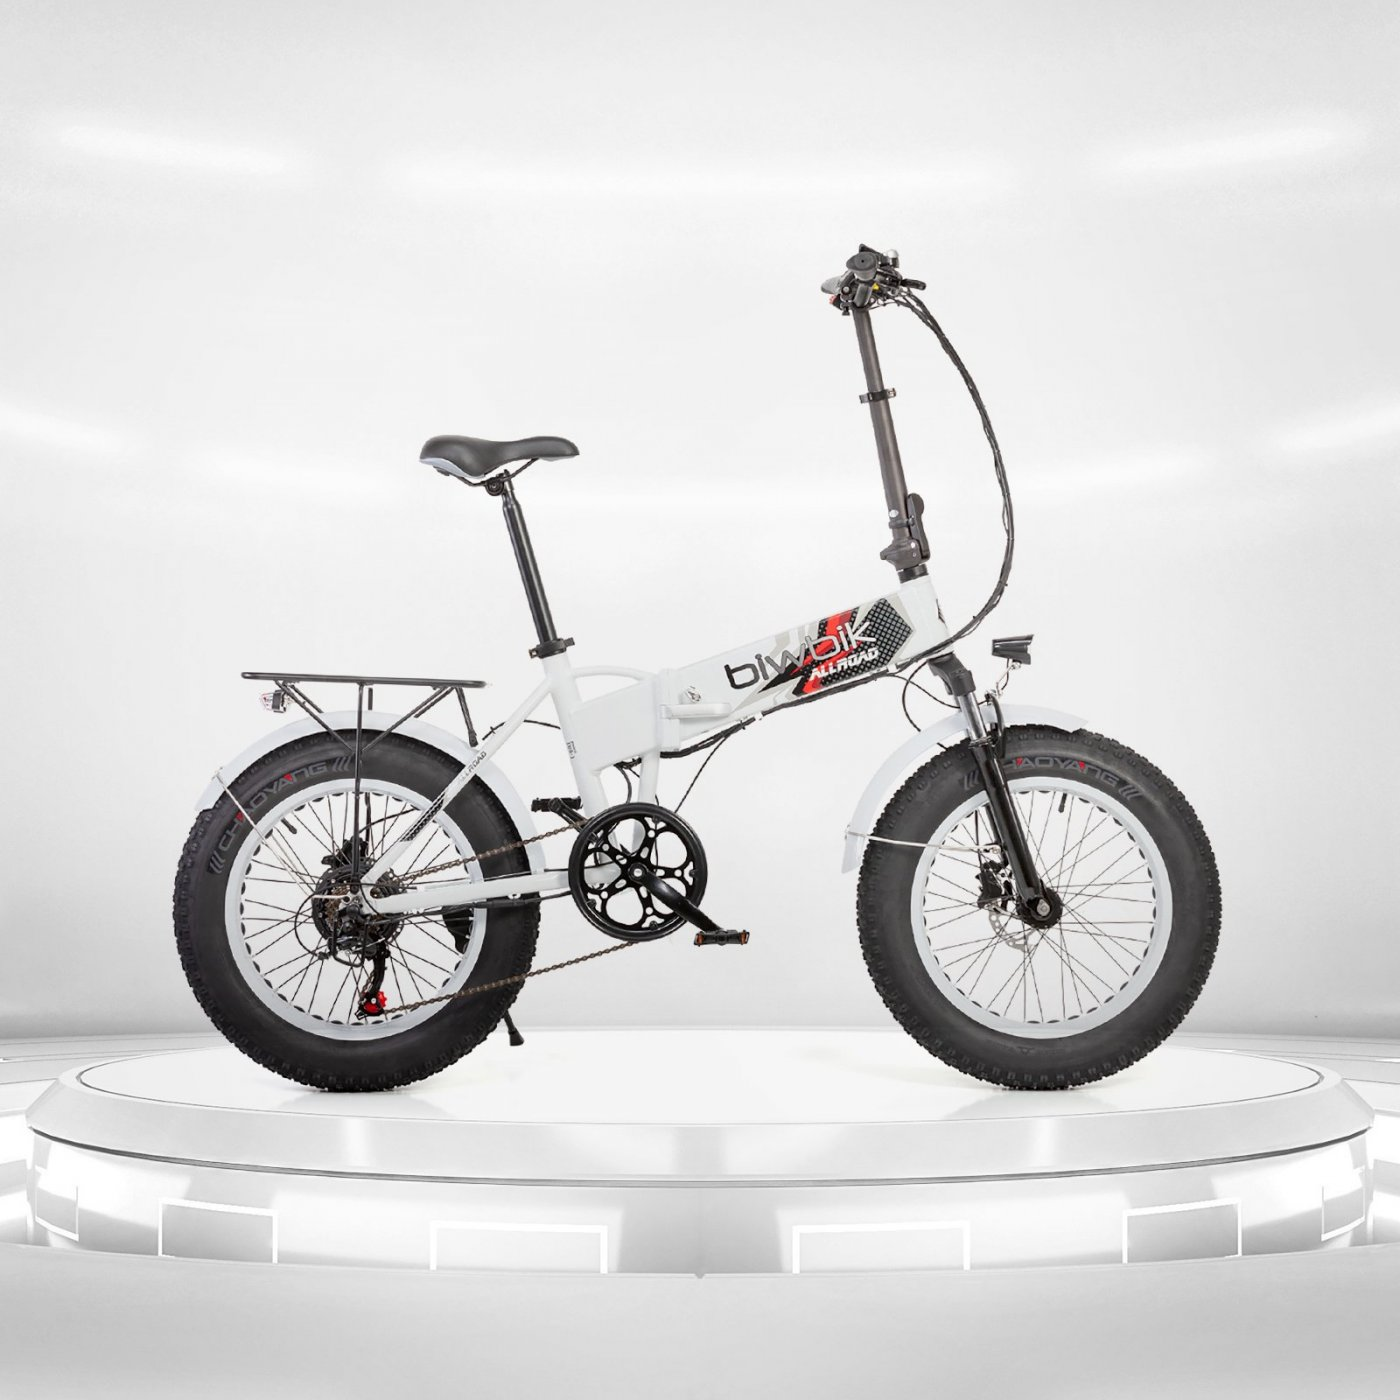 Biwbik All Road white folding electric bike